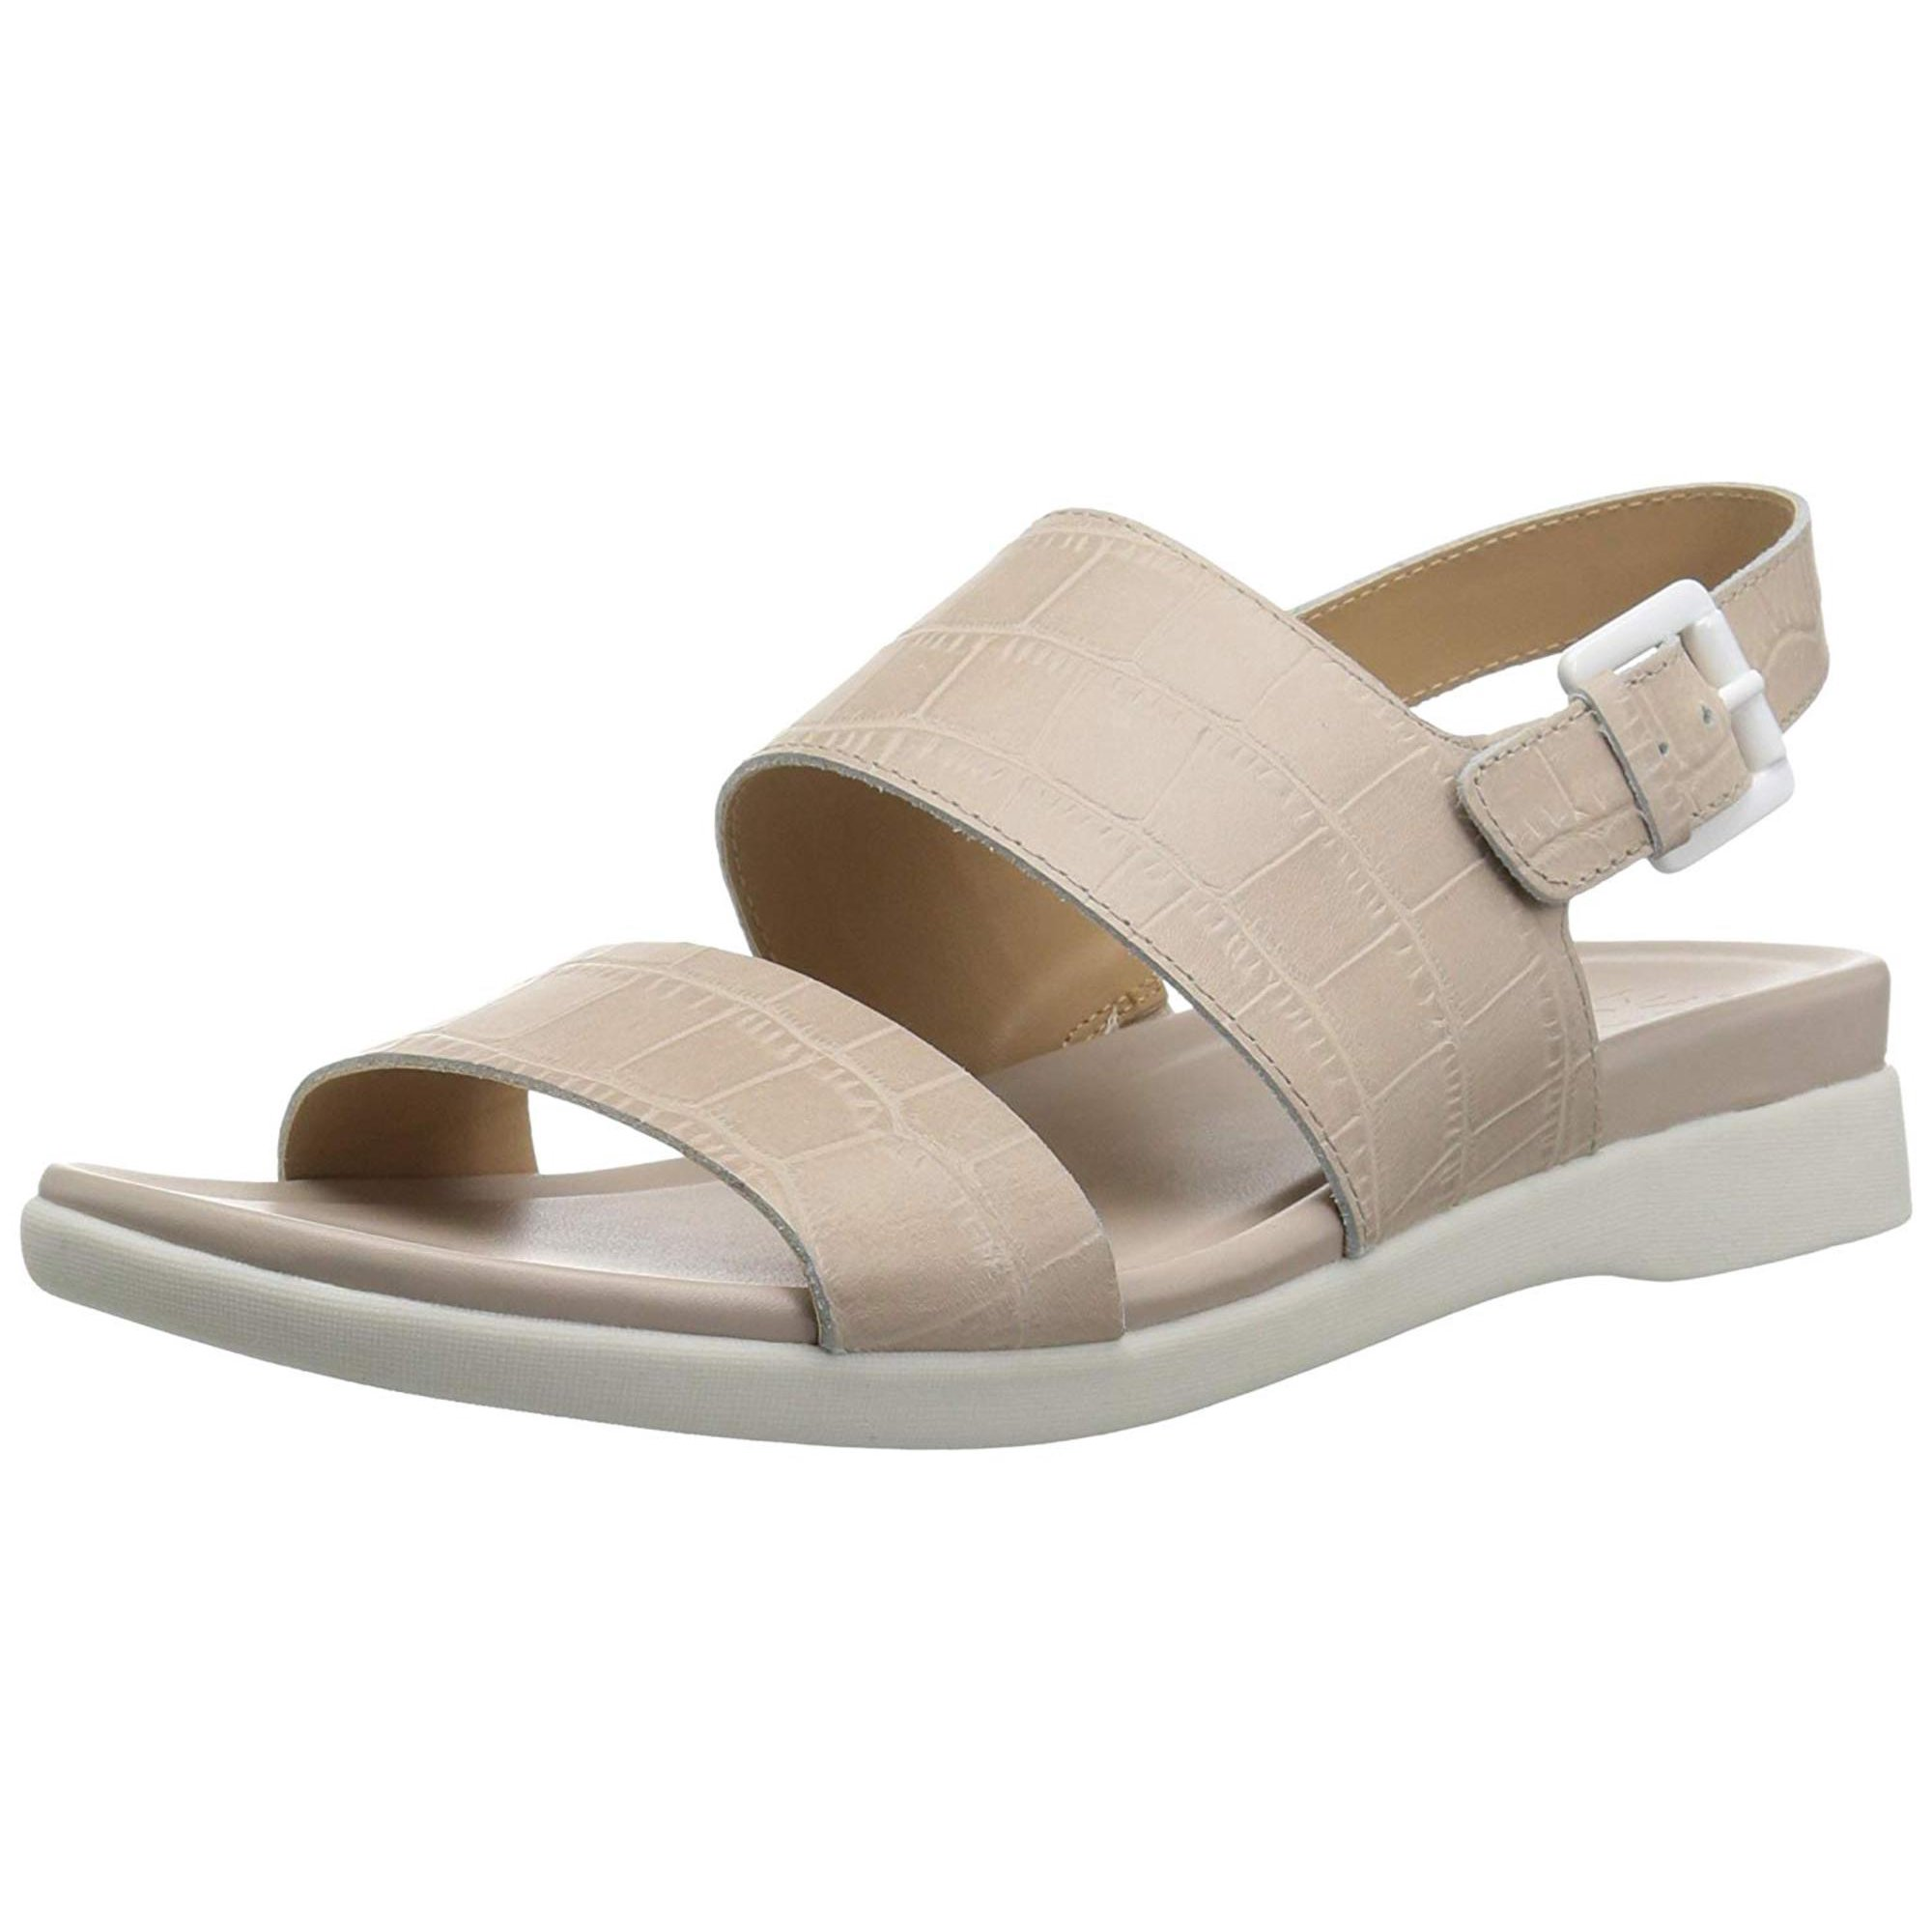 c73bee260 Naturalizer Womens Emory Leather Open Toe Casual